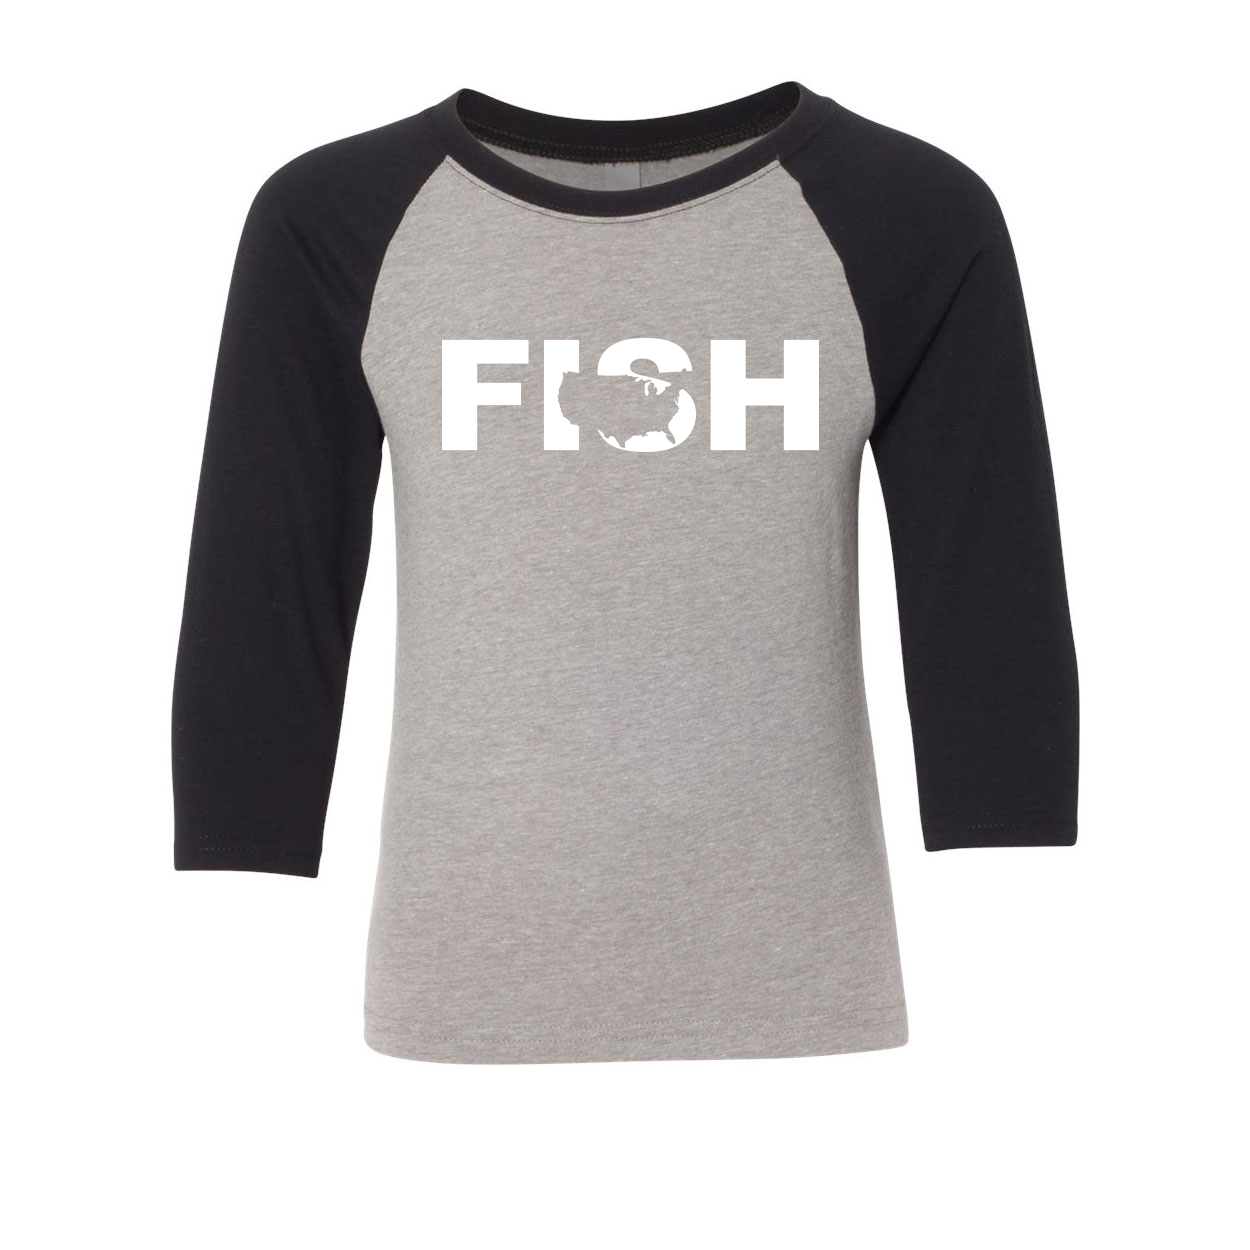 Fish United States Classic Youth Premium Raglan Shirt Gray/Black (White Logo)